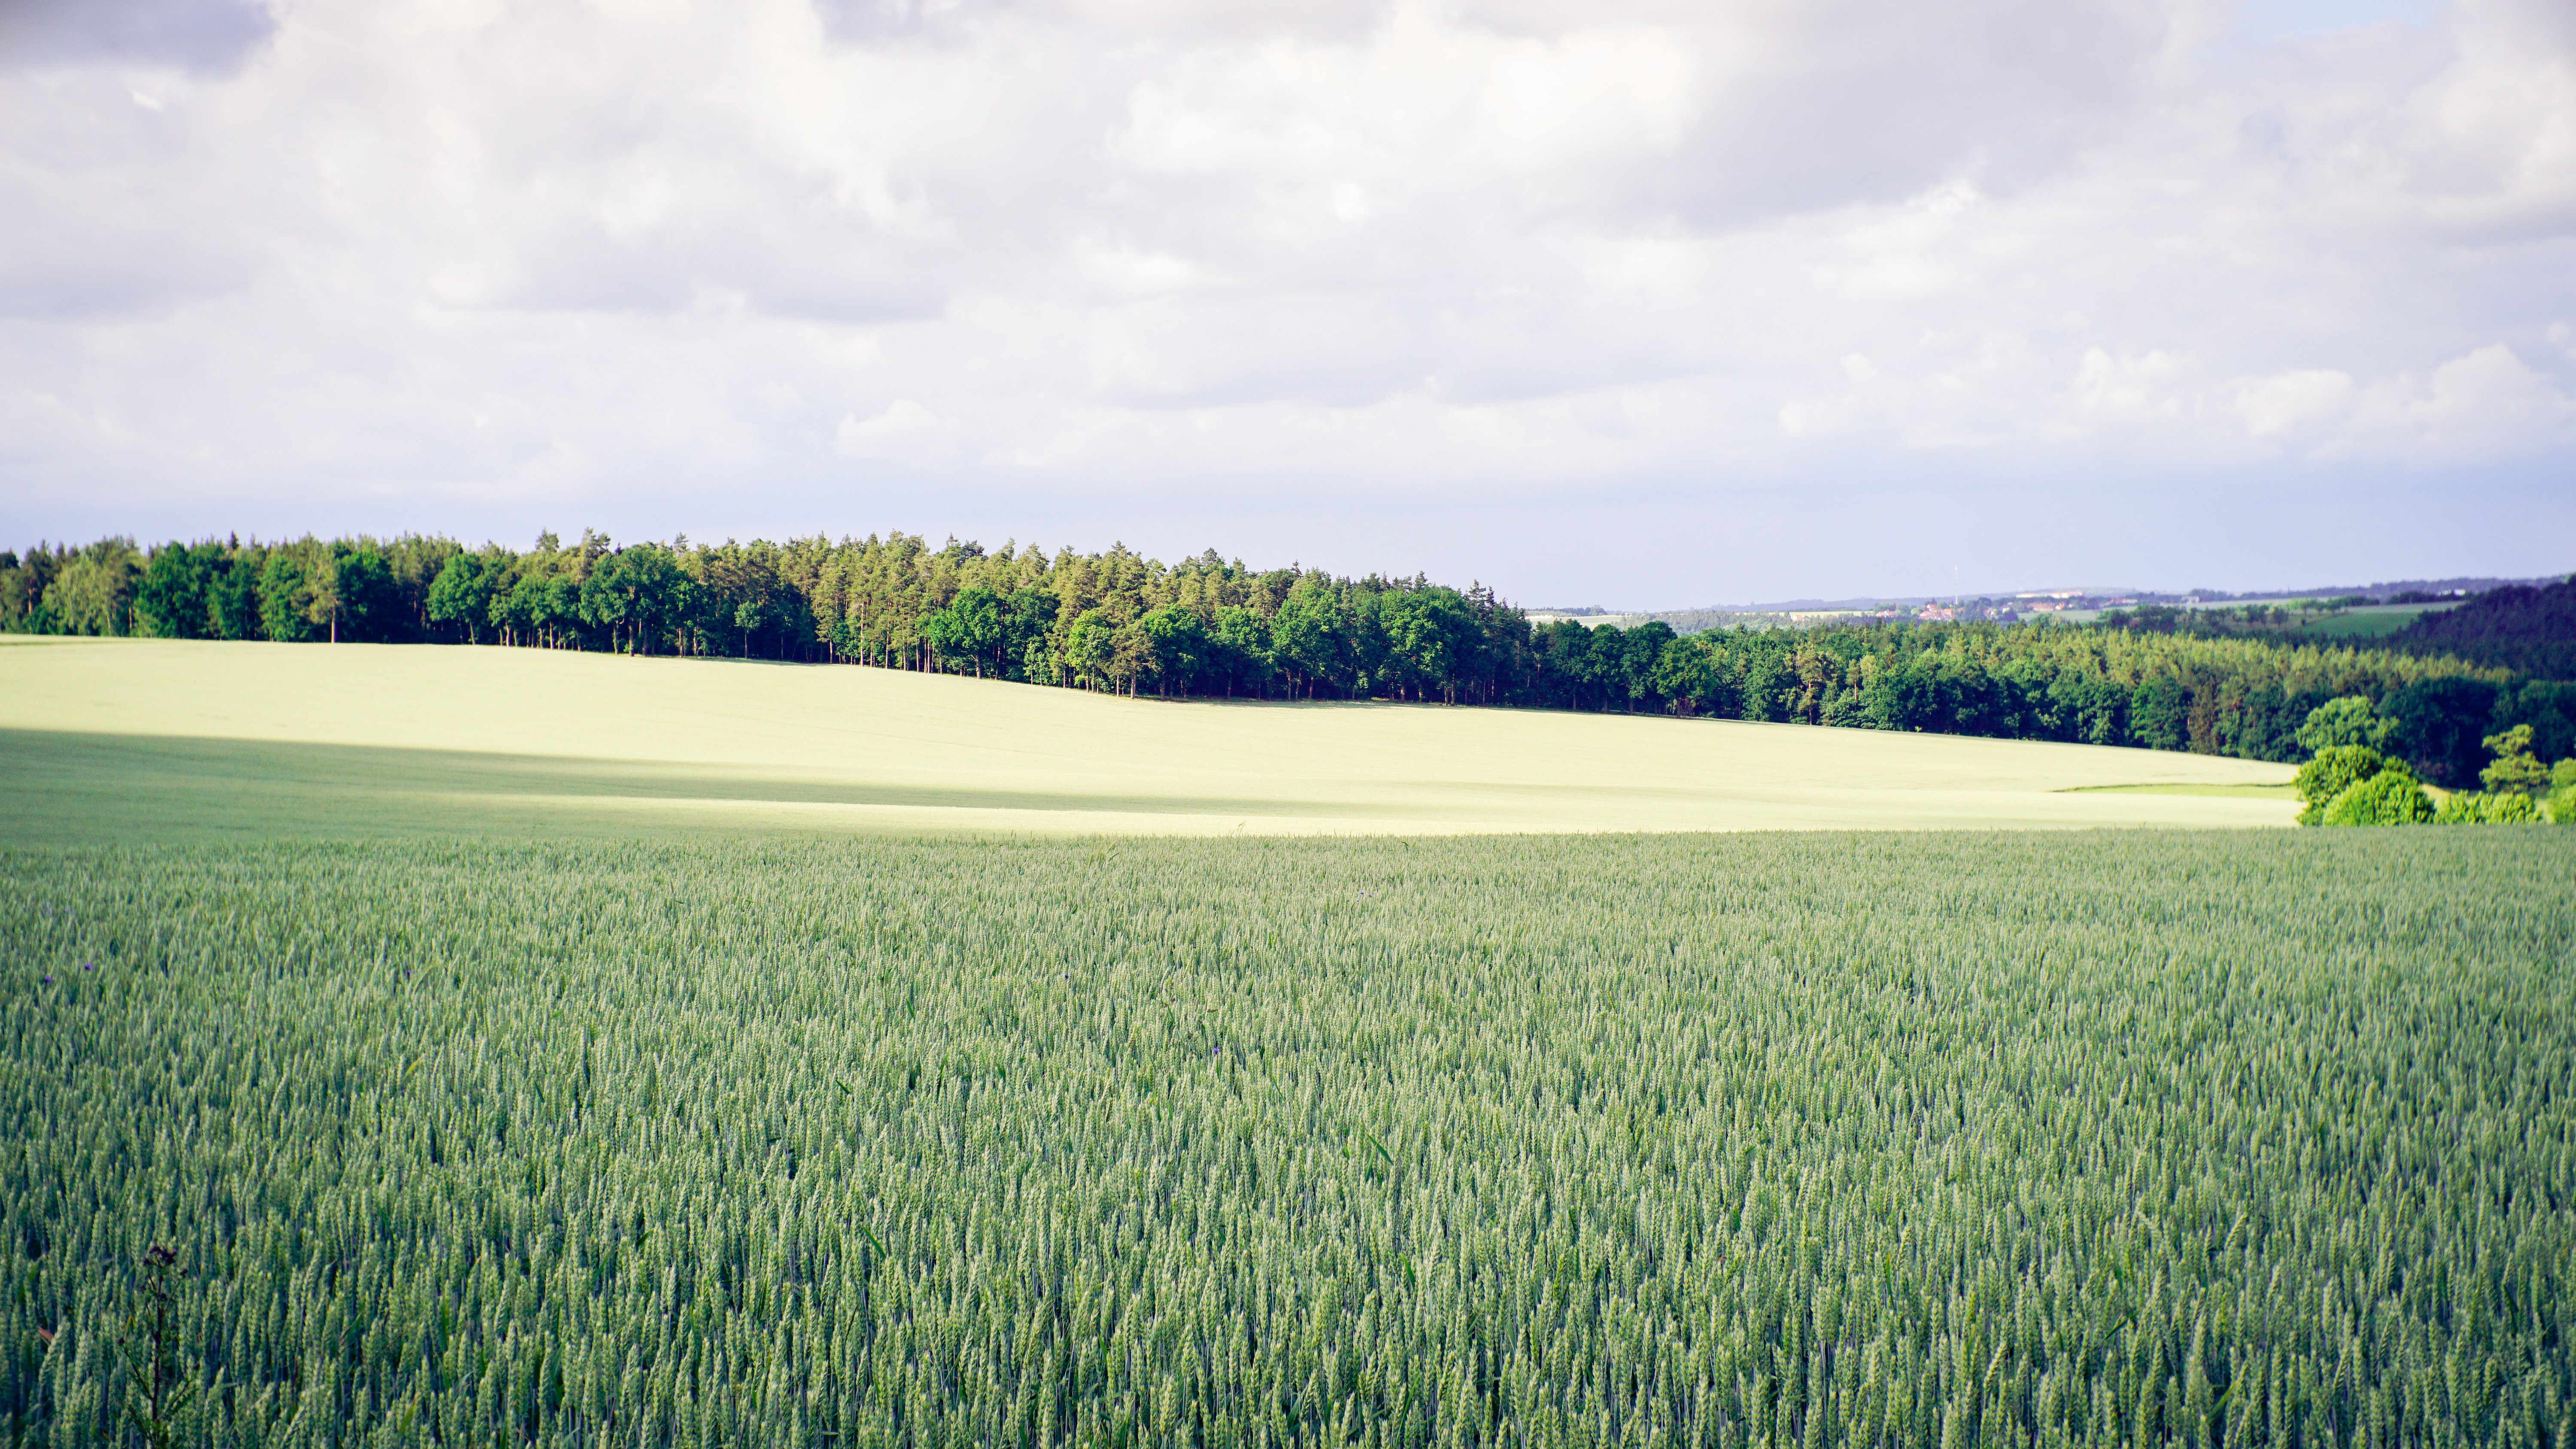 A vast green agricultural field in Thuringia